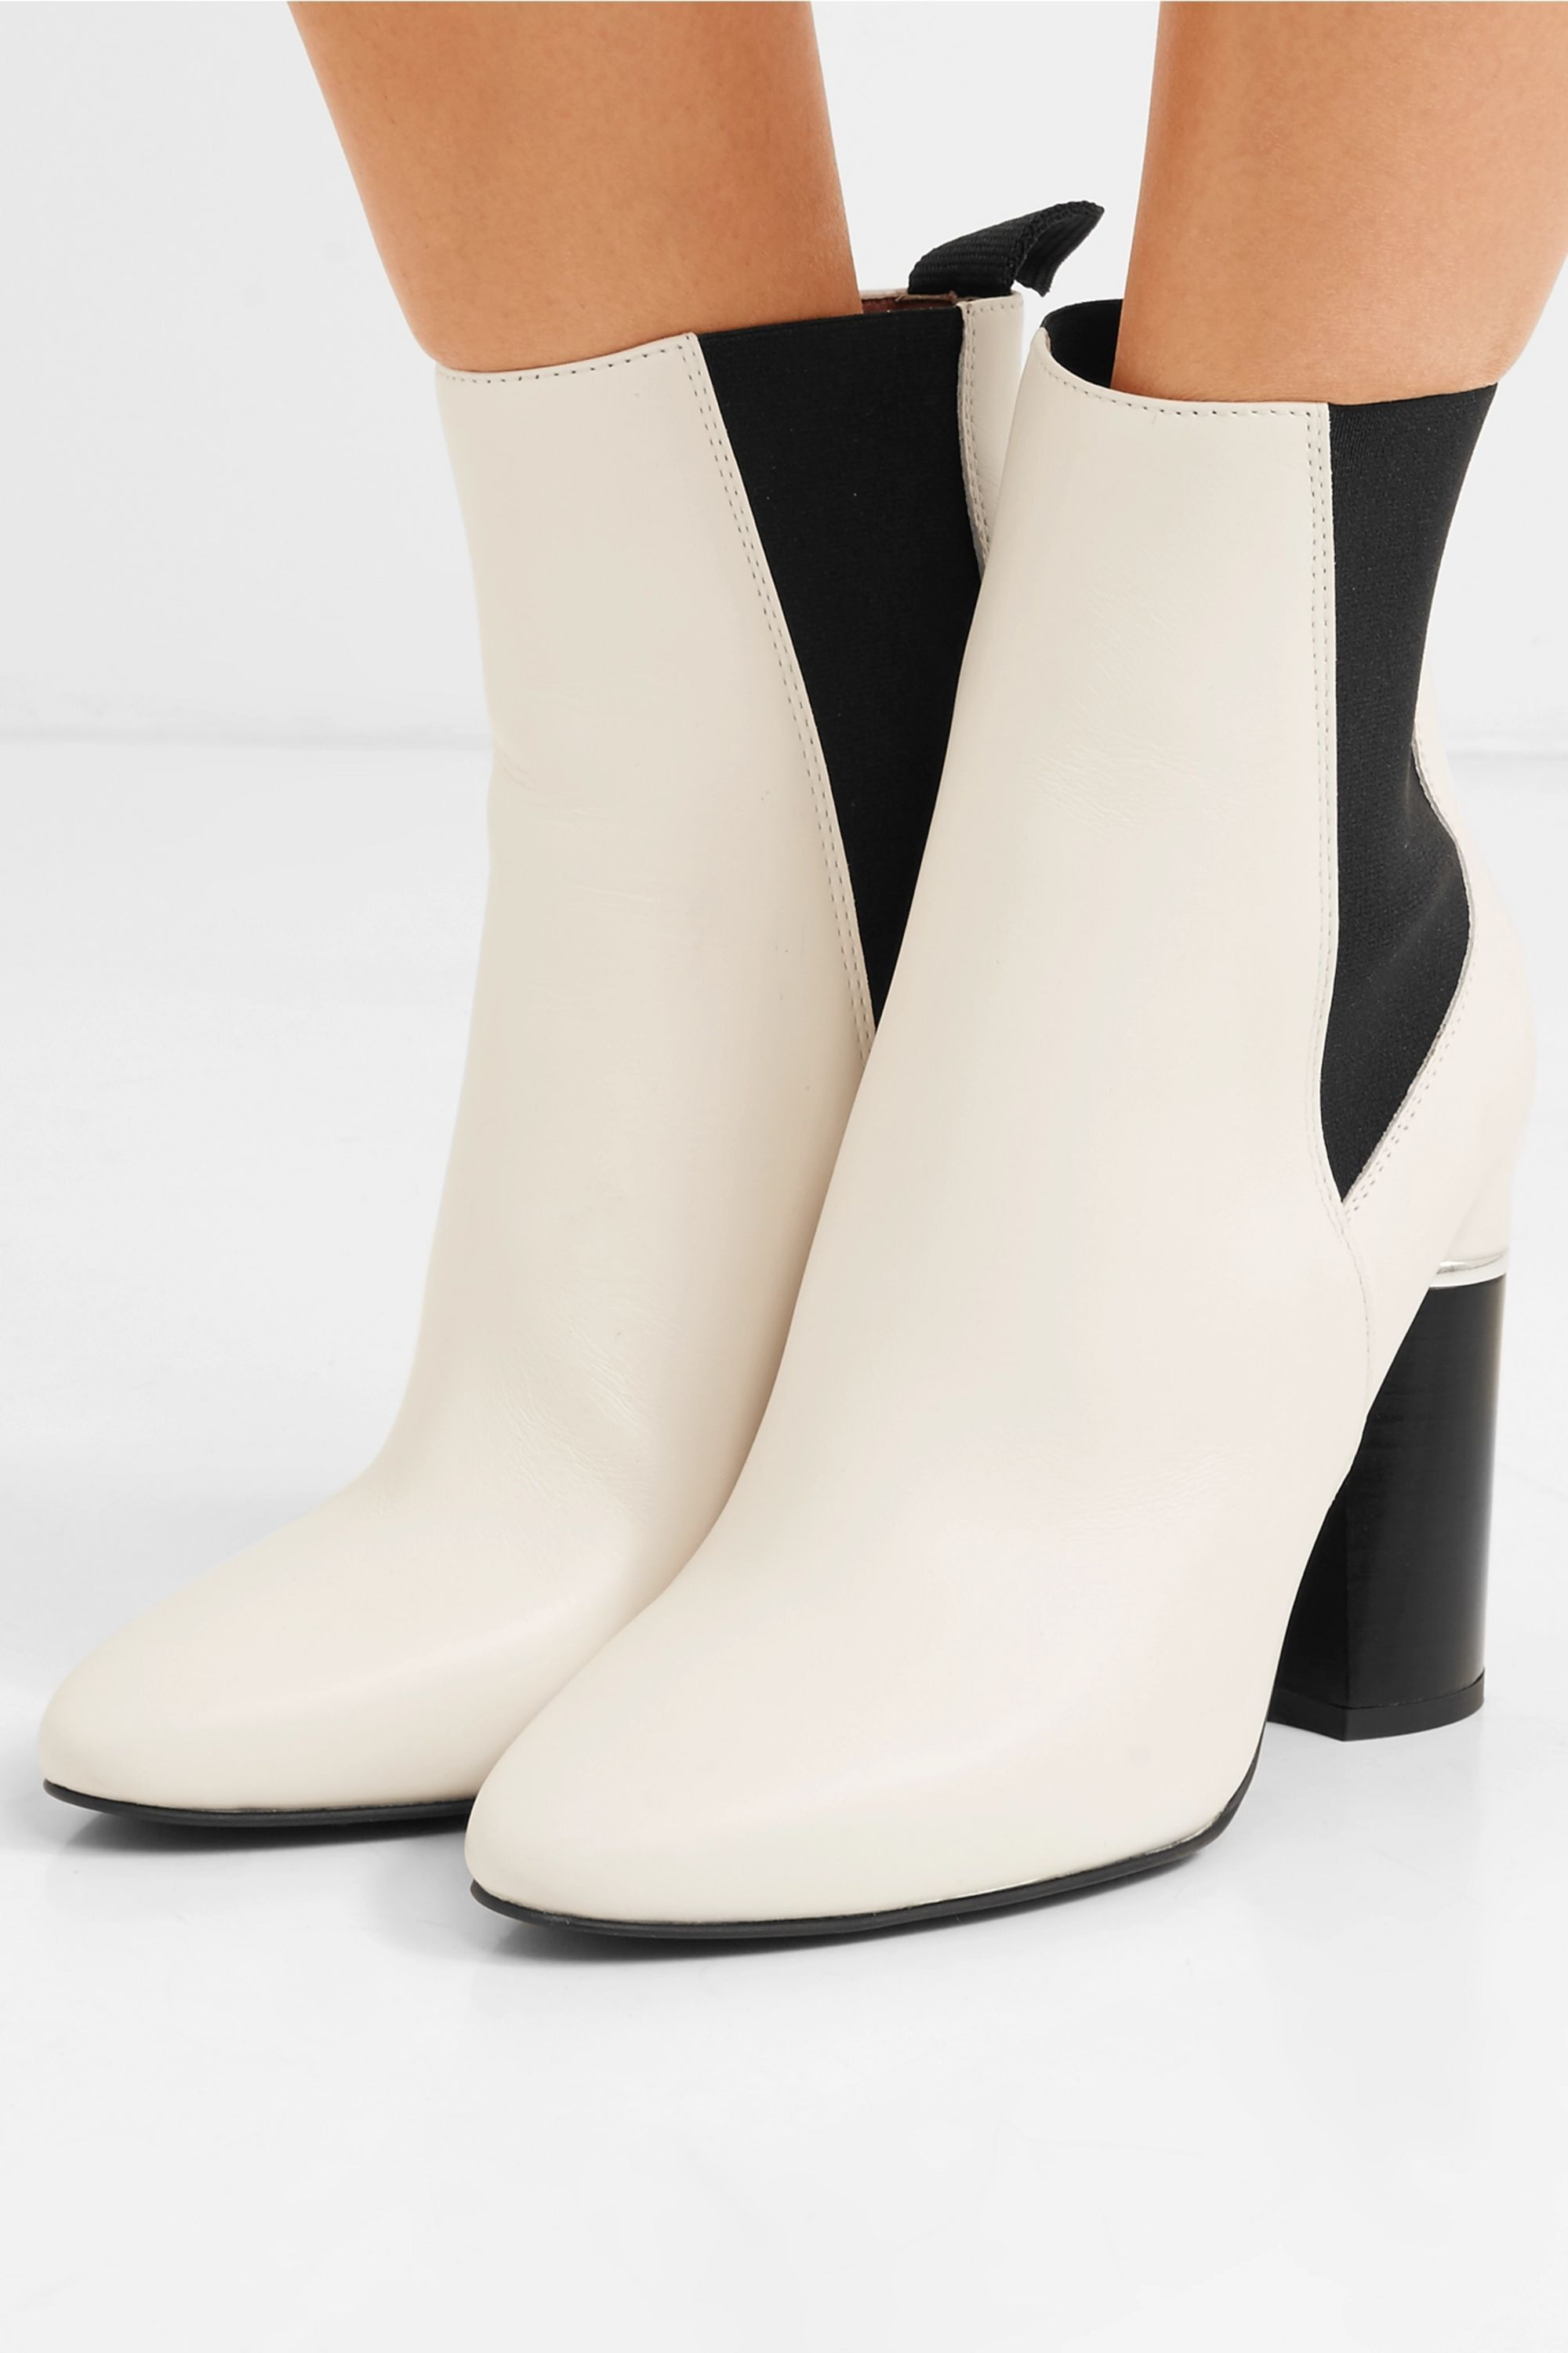 White Drum leather ankle boots | 3.1